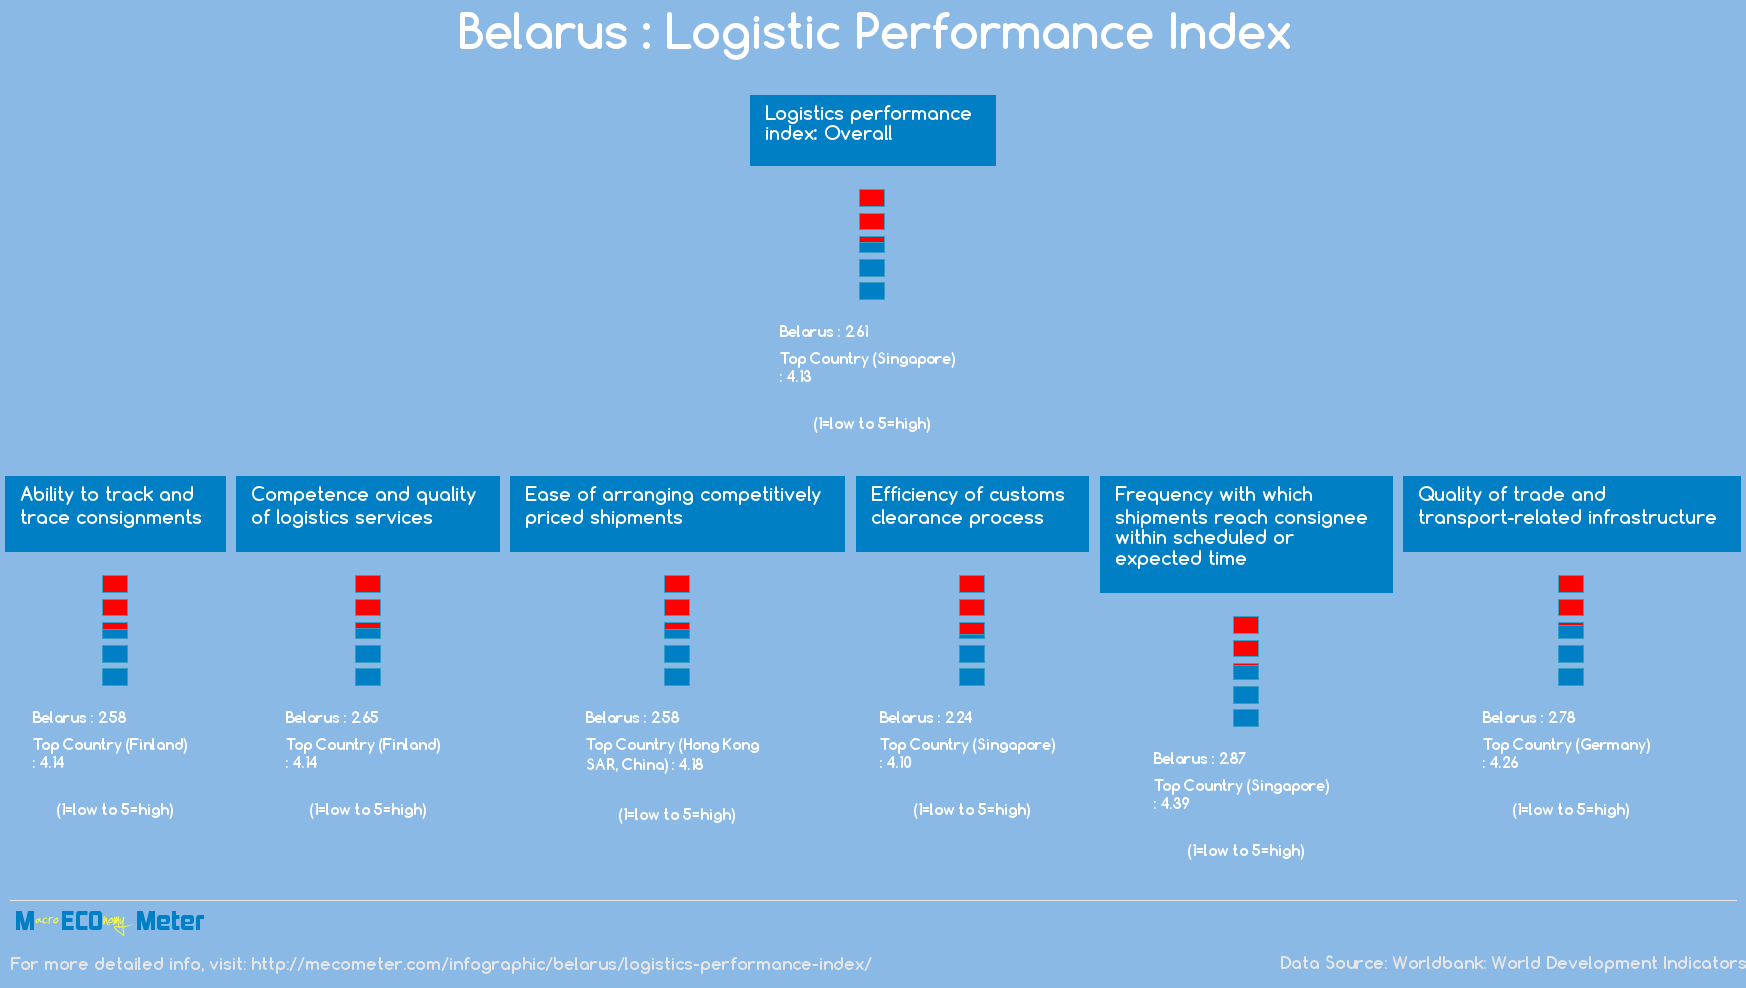 Belarus : Logistic Performance Index